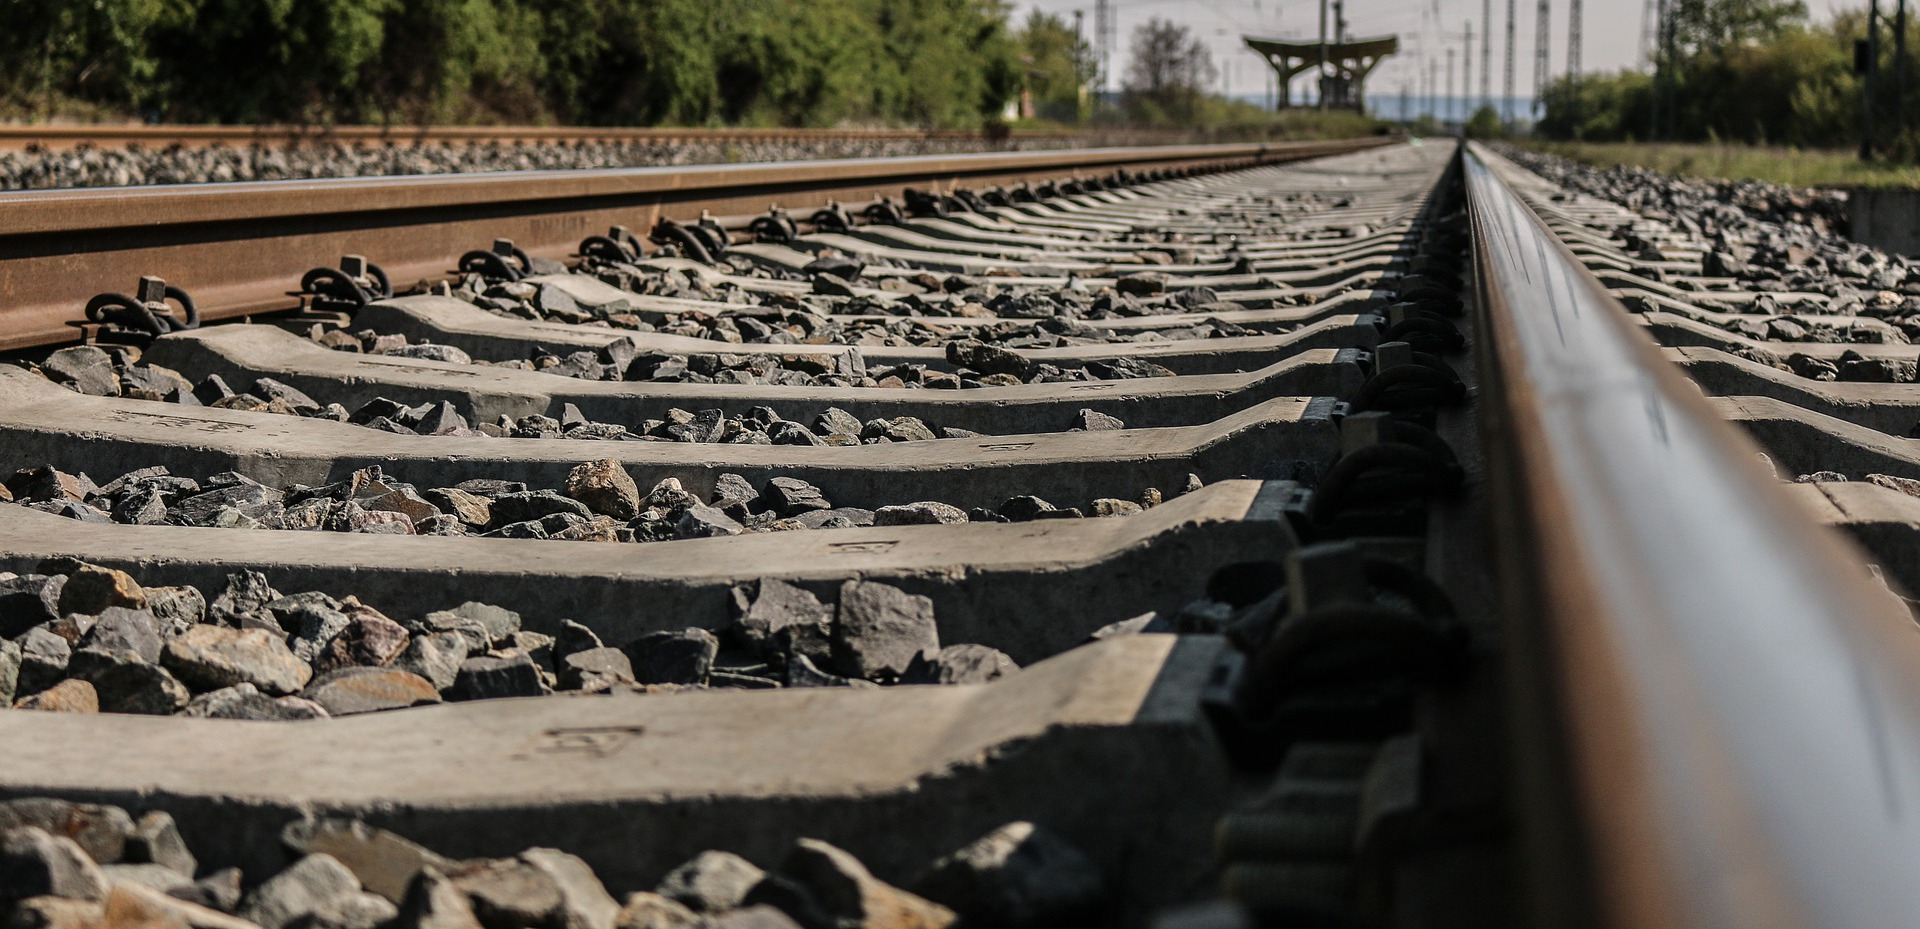 China pushes on with Central Asia trade despite missing Kyrgyz rail link – Analysis